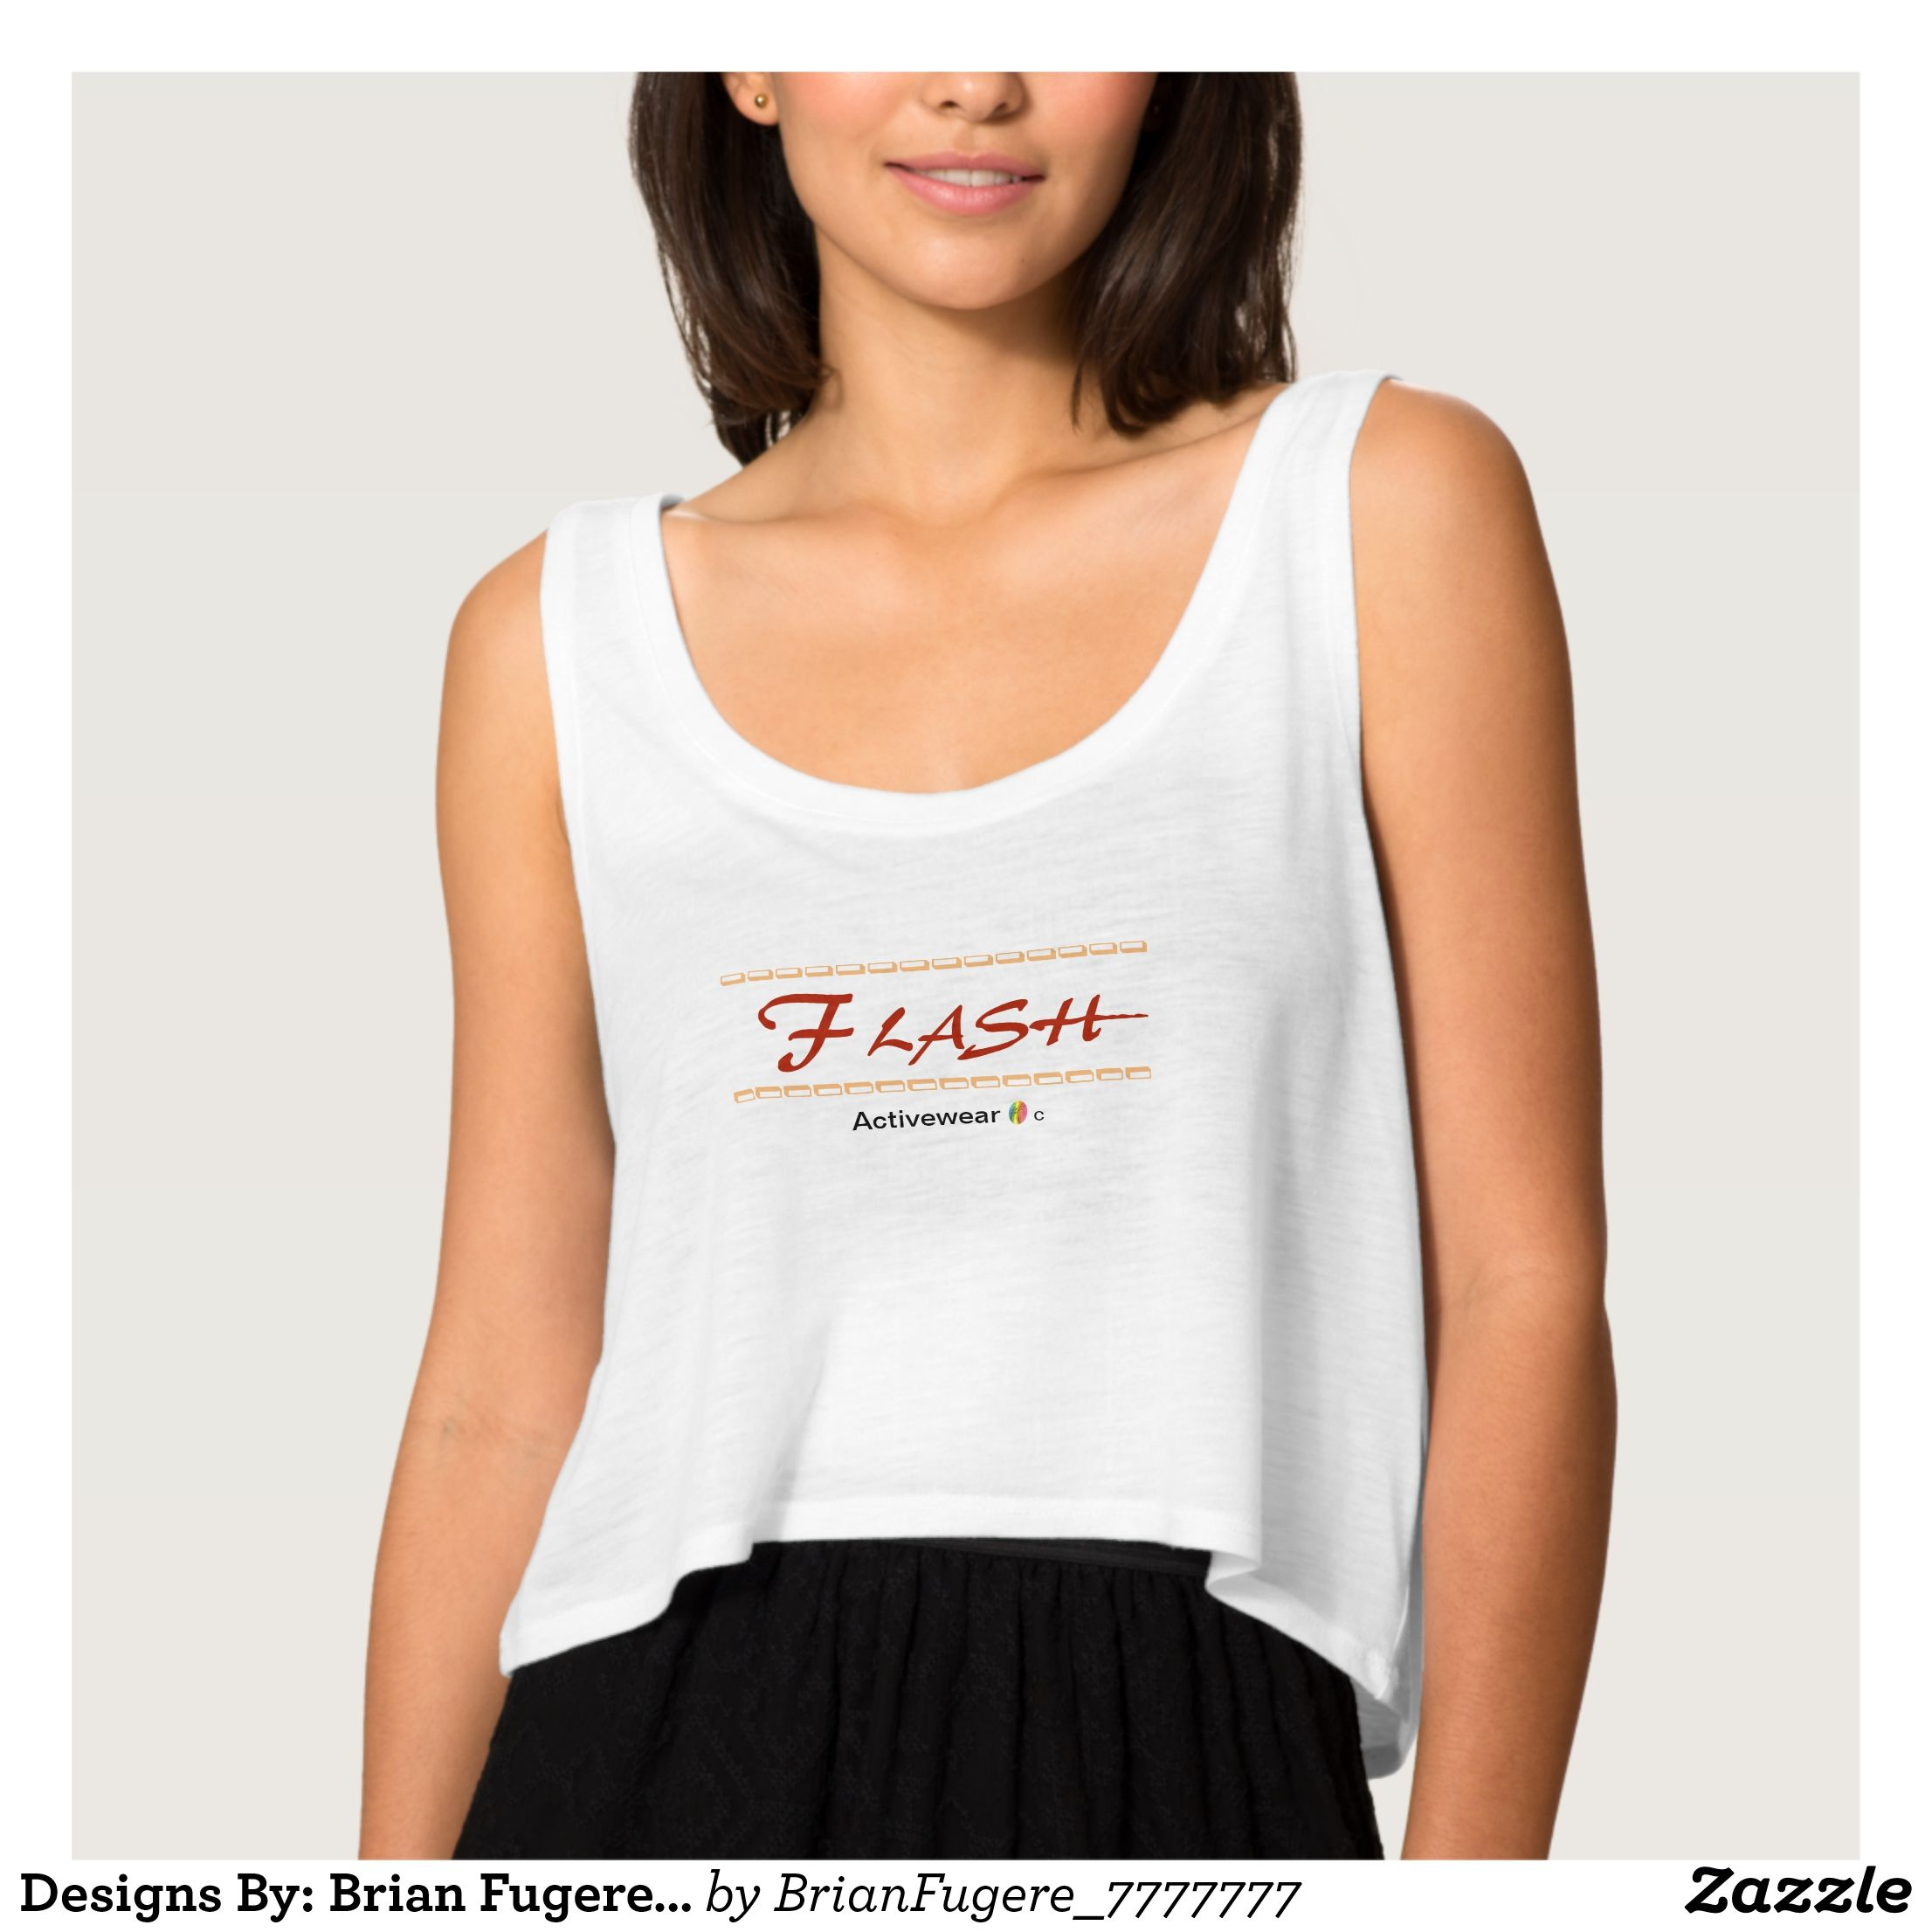 b9926b7116a59 Designs By  Brian Fugere Activewear Tank Top